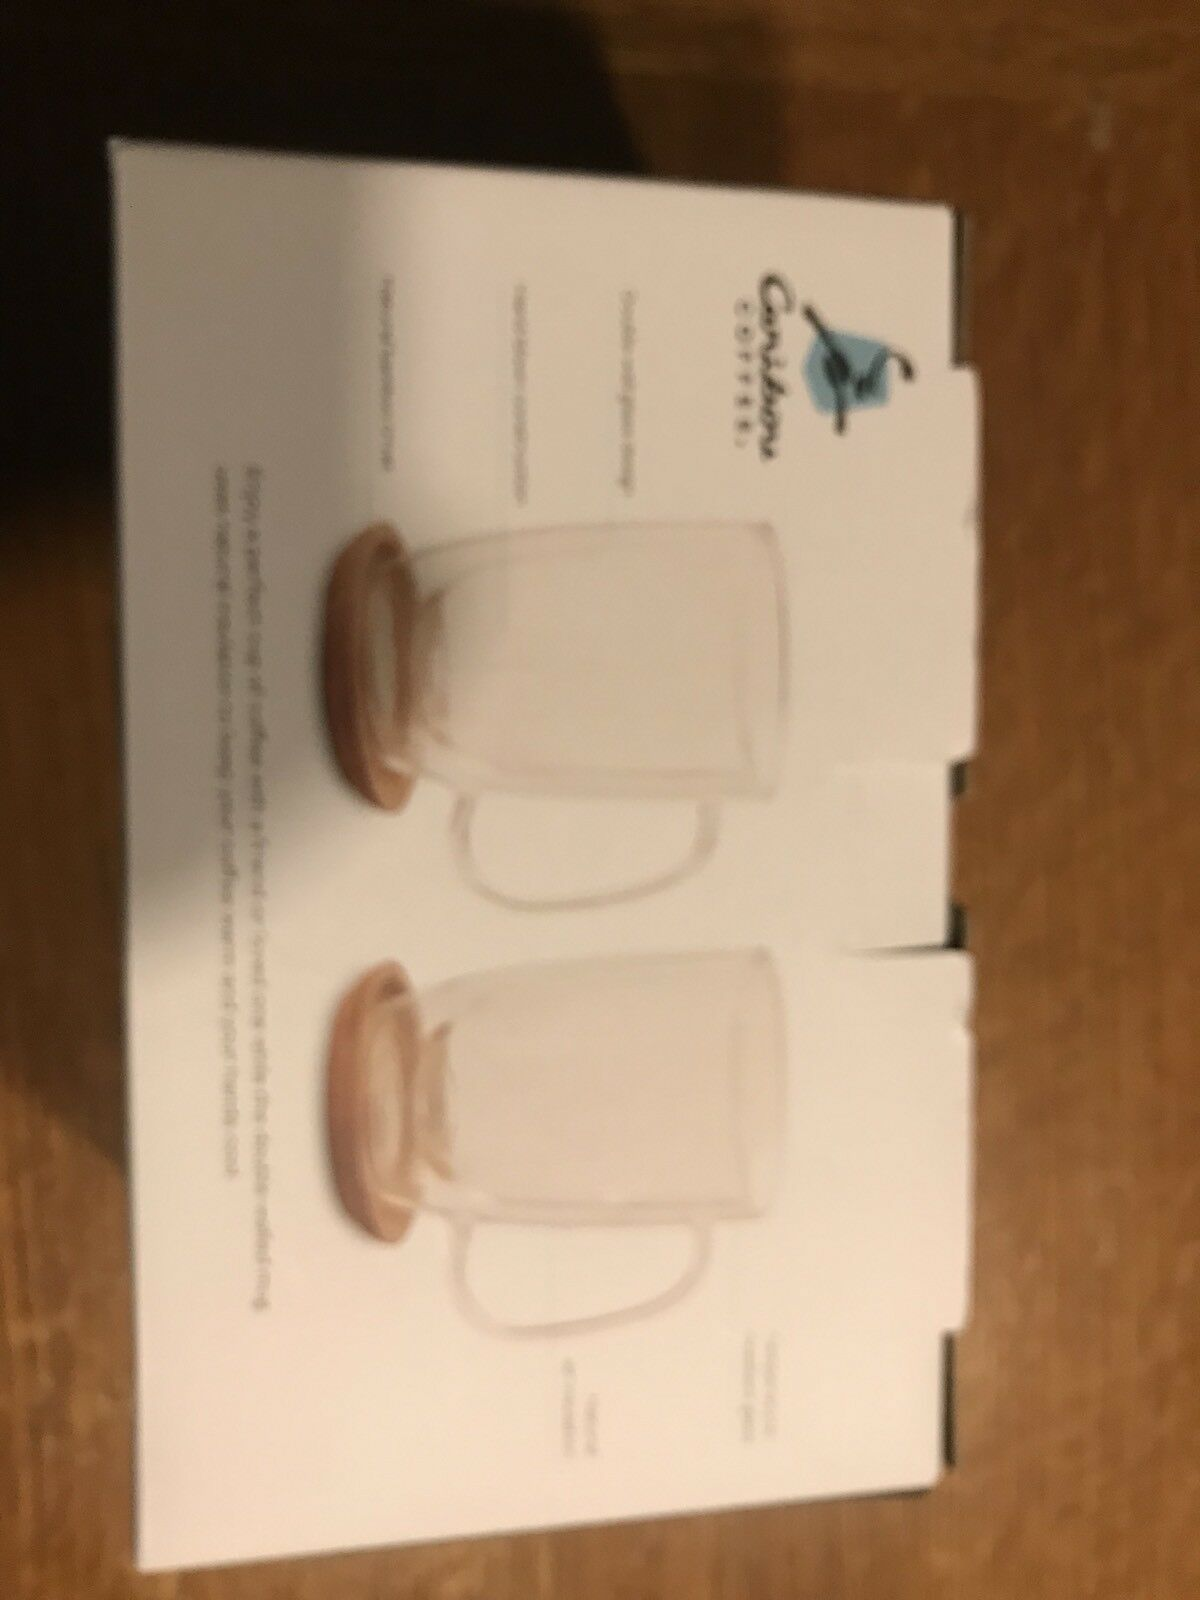 Caribou Coffee 12 0z. Coffee Mugs Double Wall Glass 2 Pack Includes Trivets